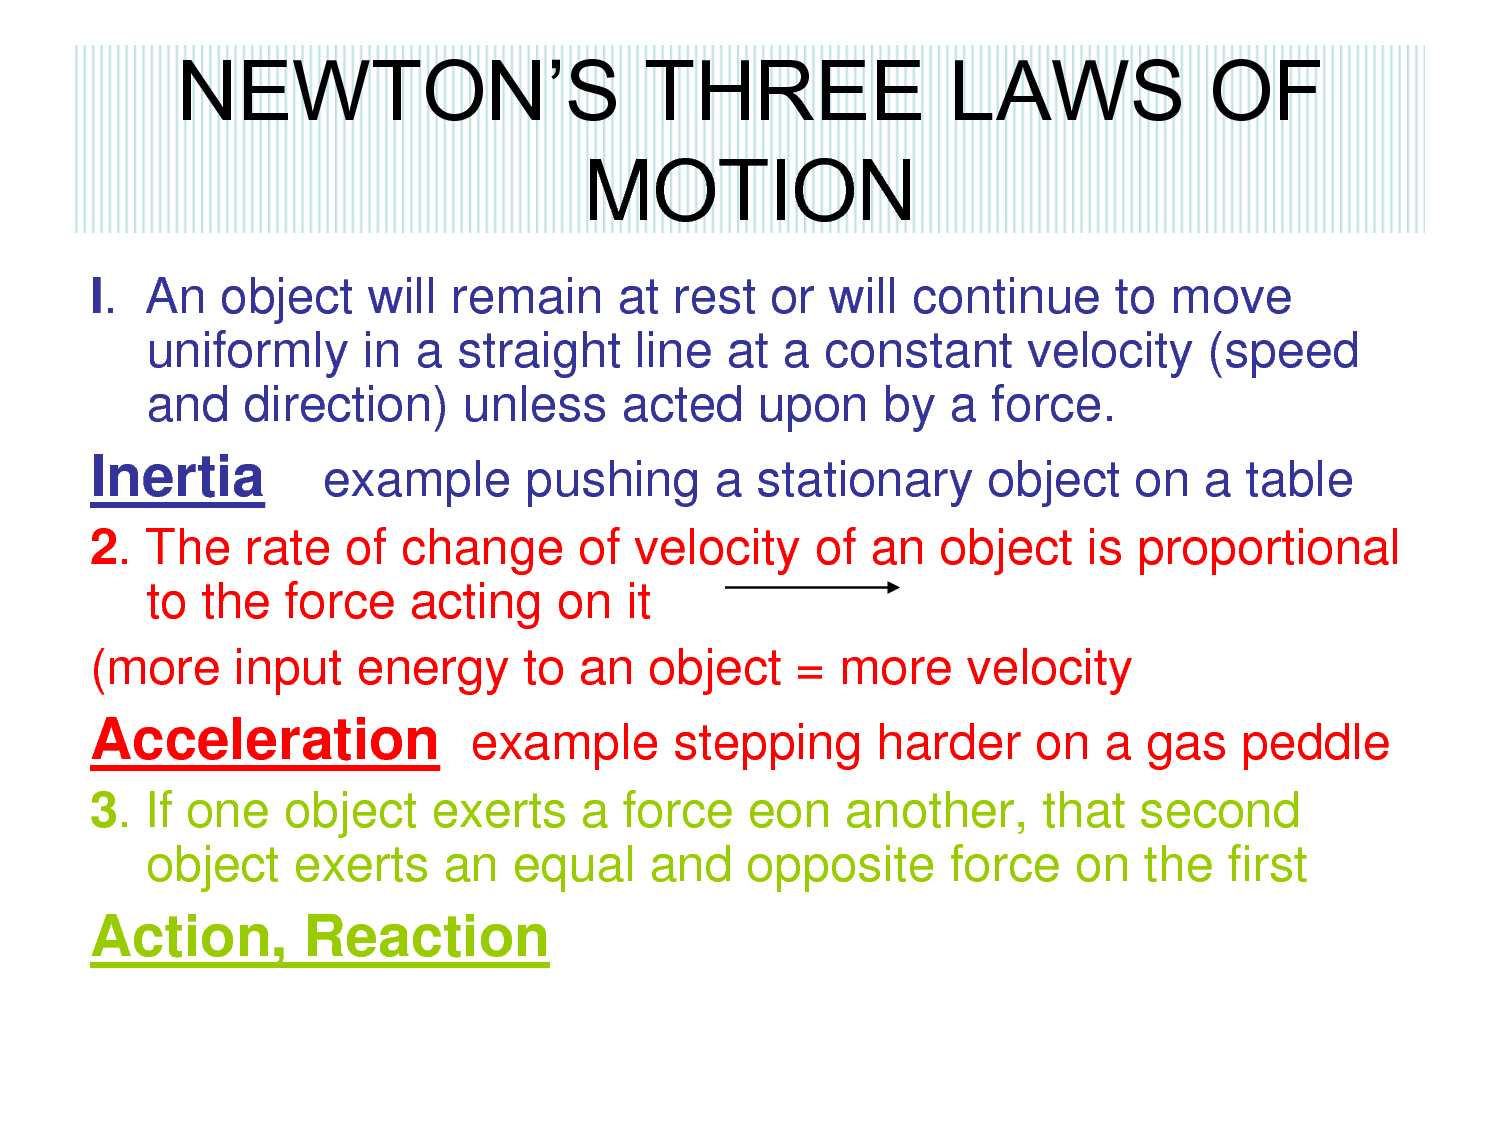 6th Grade Science 4th Six Weeks Wk 4 Newtons 3 Laws Of